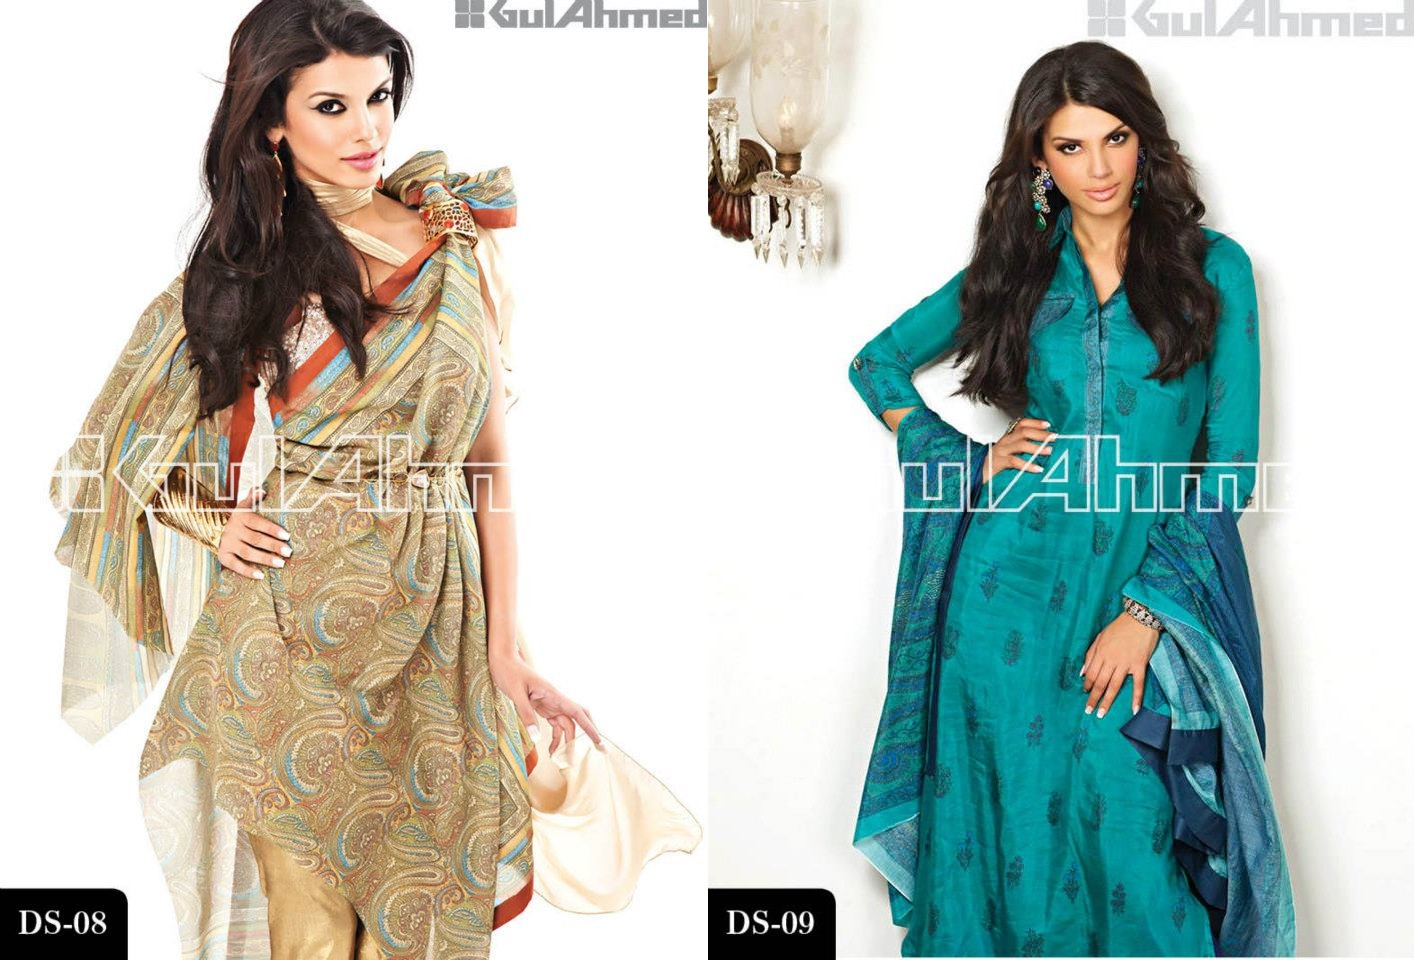 Gul Ahmed Signature Lawn Series Magazine 2013 - celebrity news update